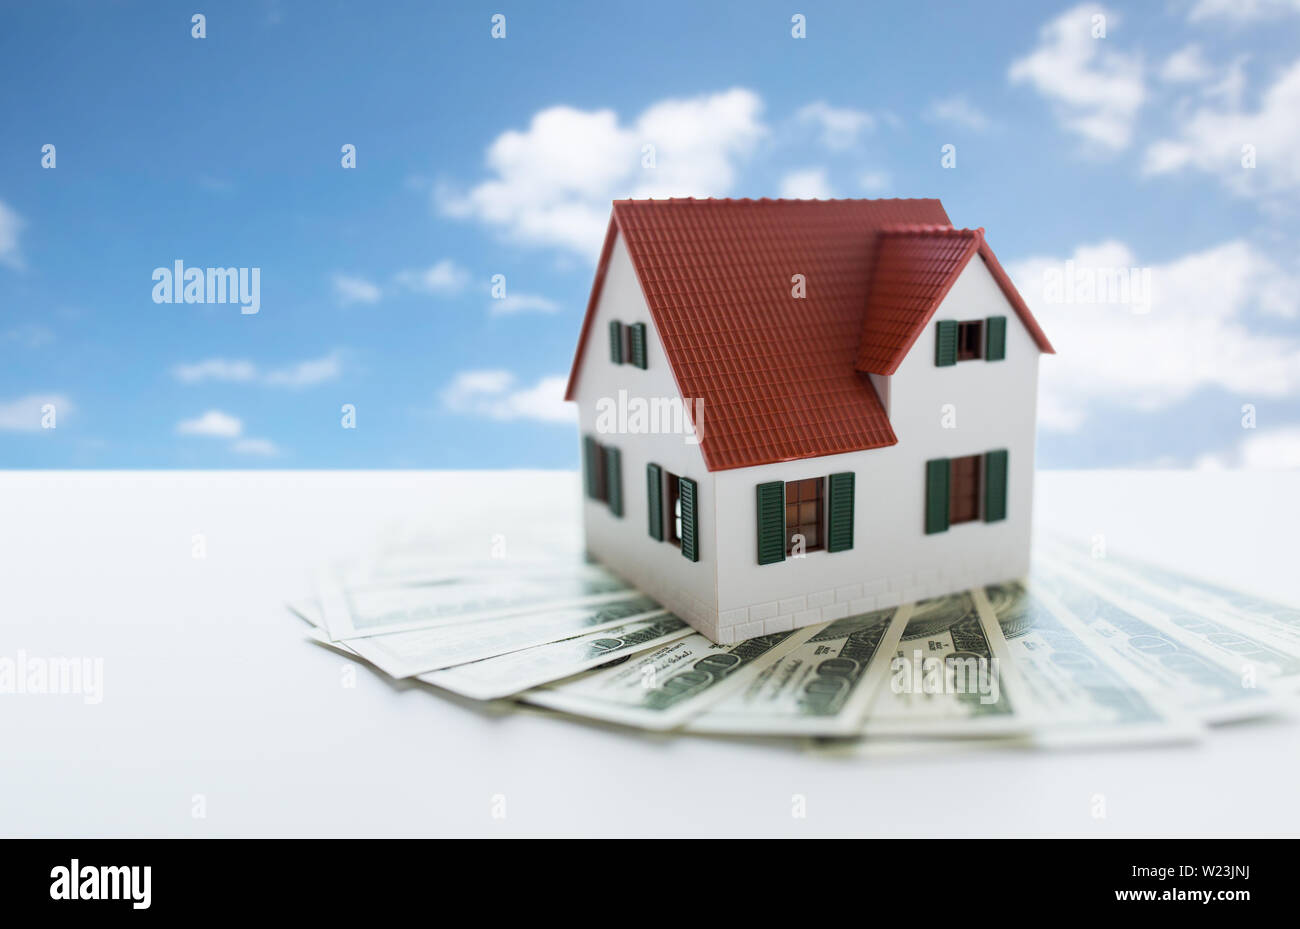 close up of home or house model and money - Stock Image